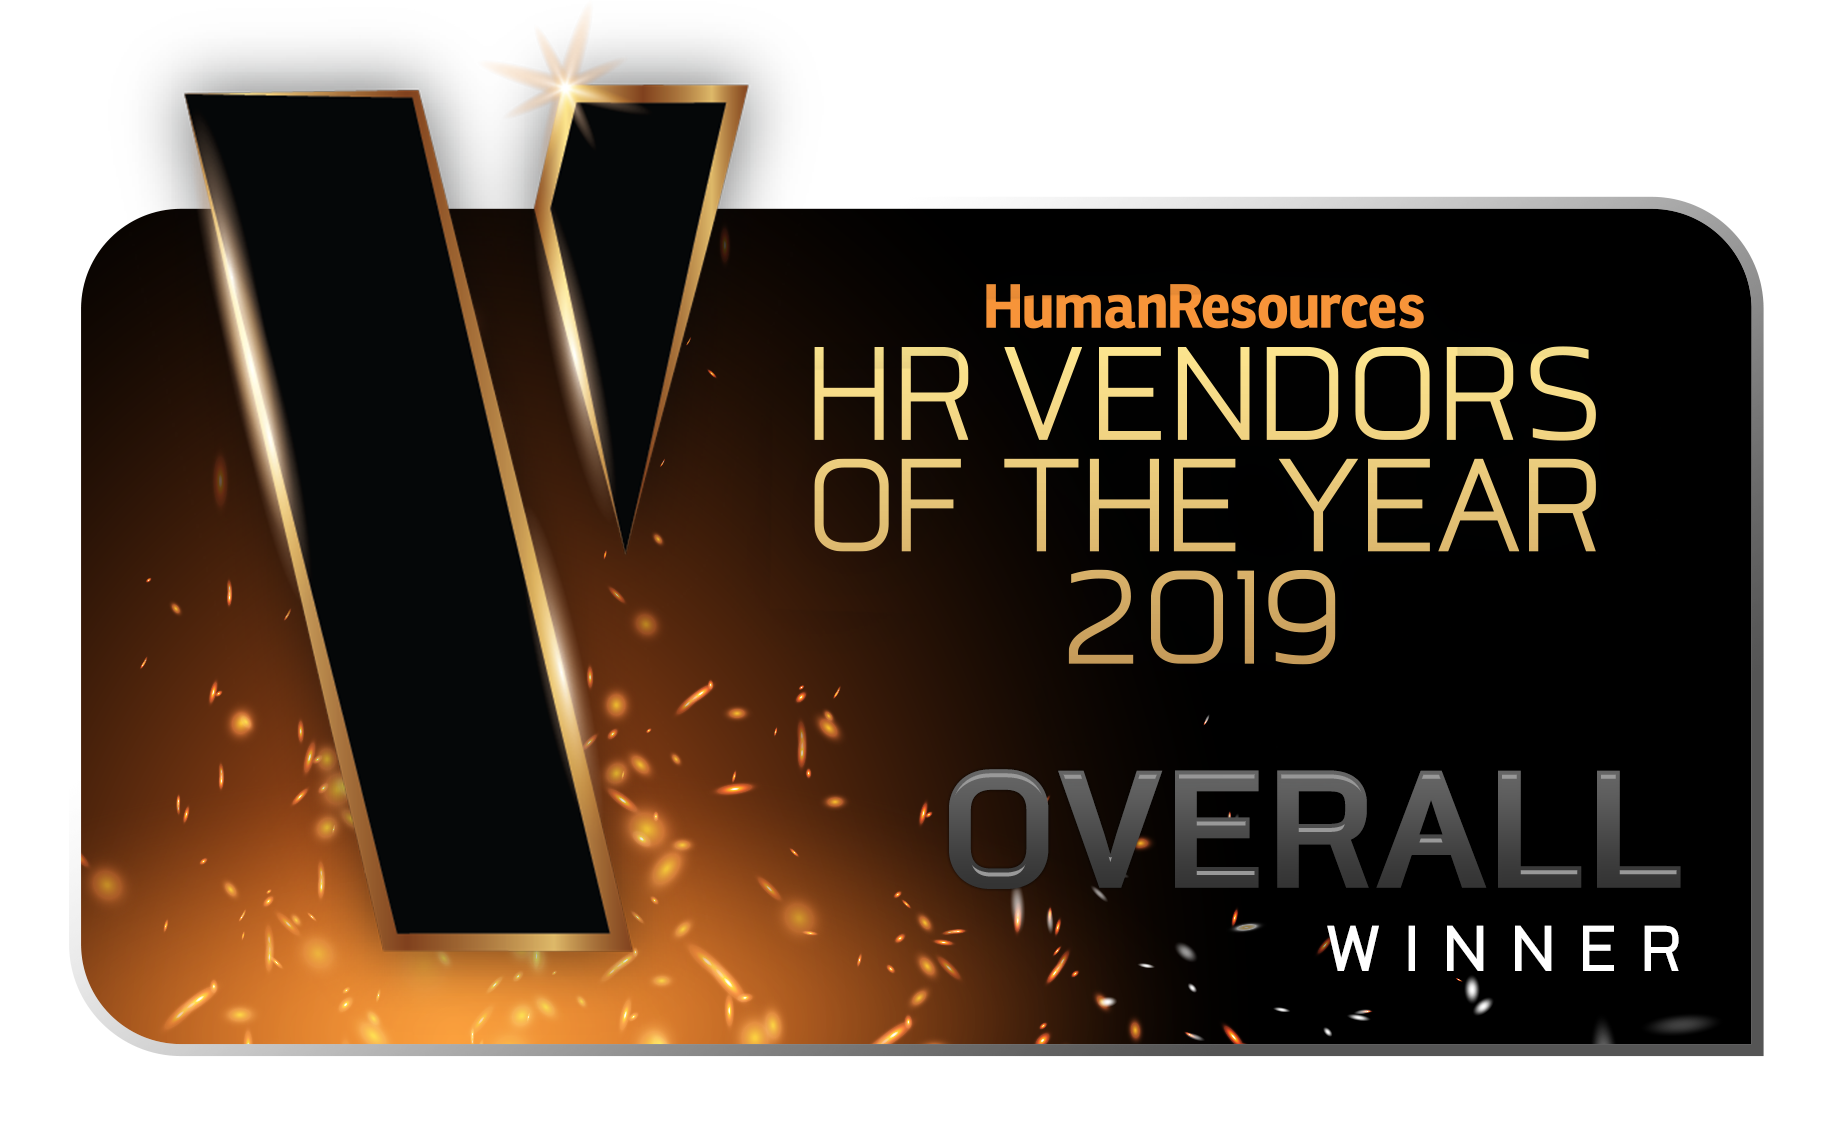 HR Vendors of the Year 2019